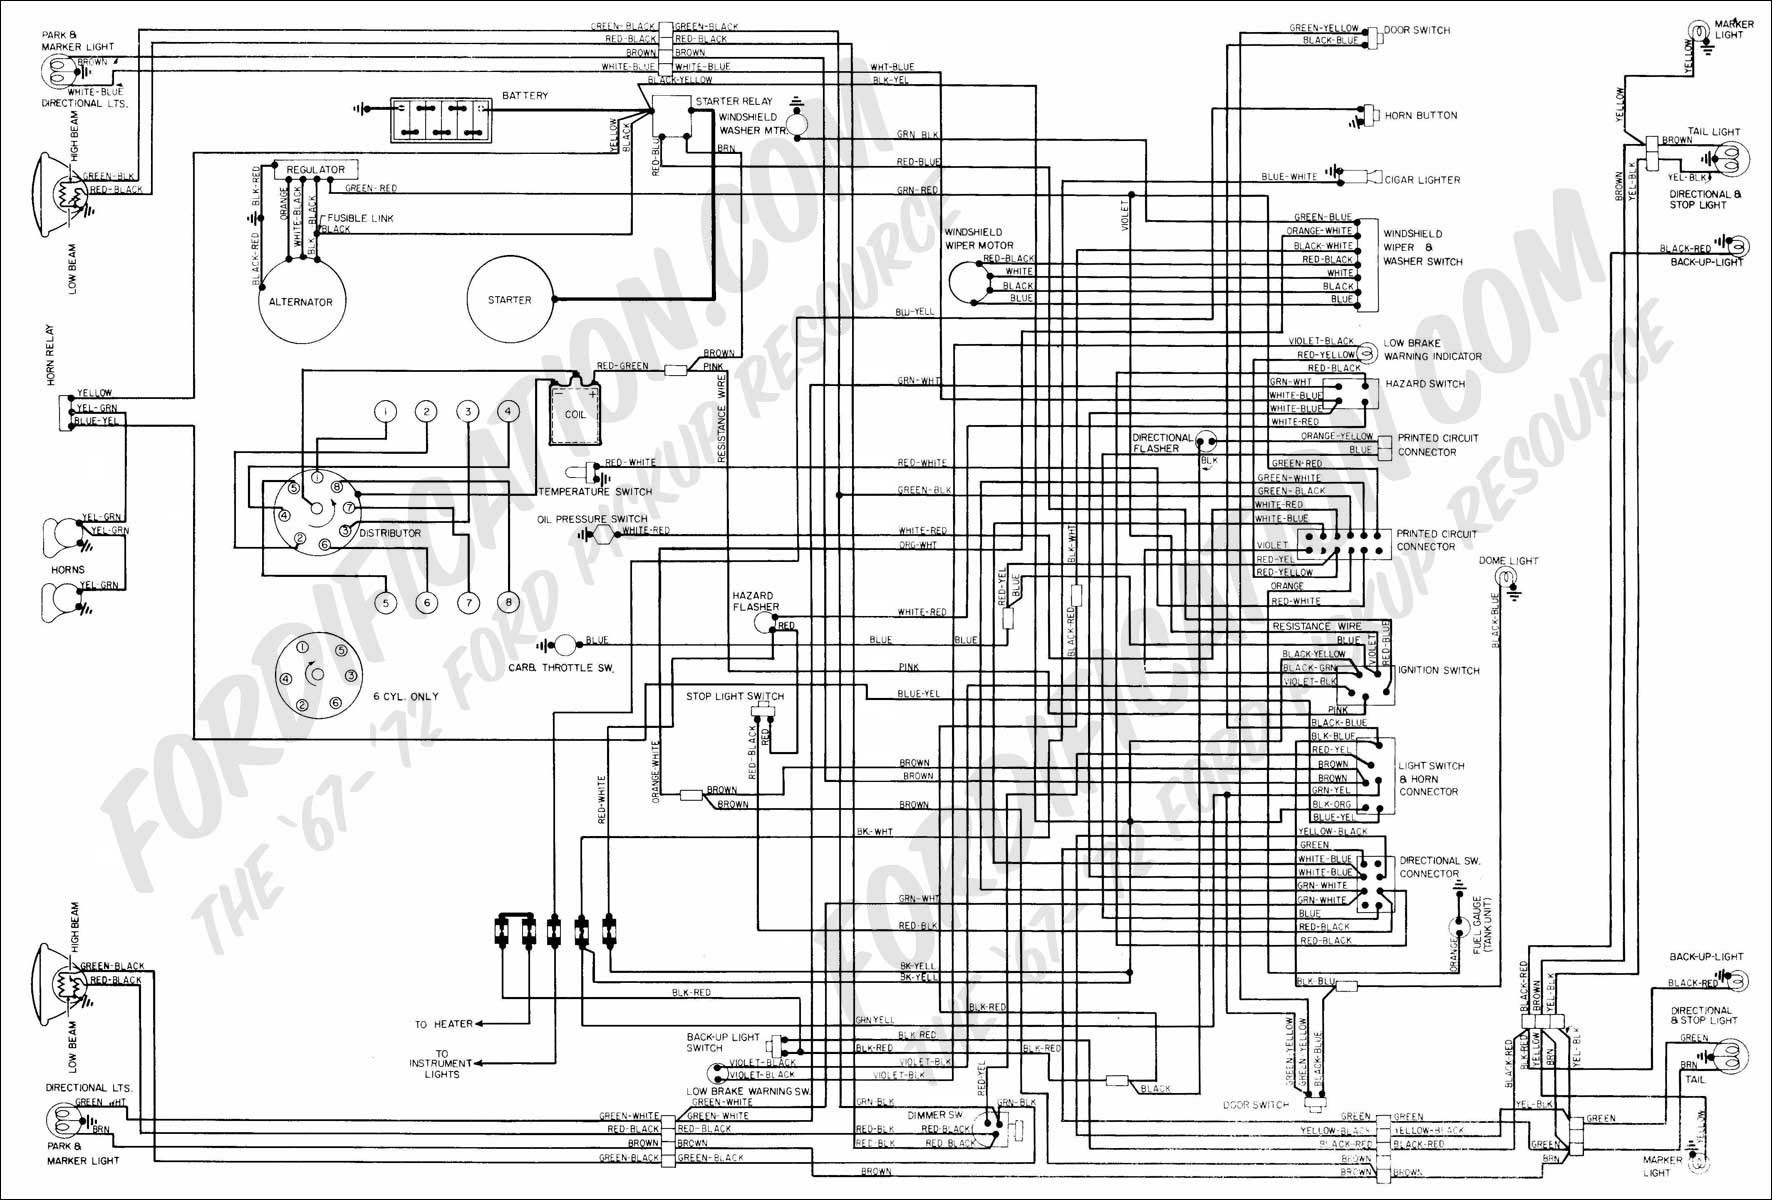 2011 F250 Wiring Diagram Wiring Diagram Pipe Day A Pipe Day A Emilia Fise It